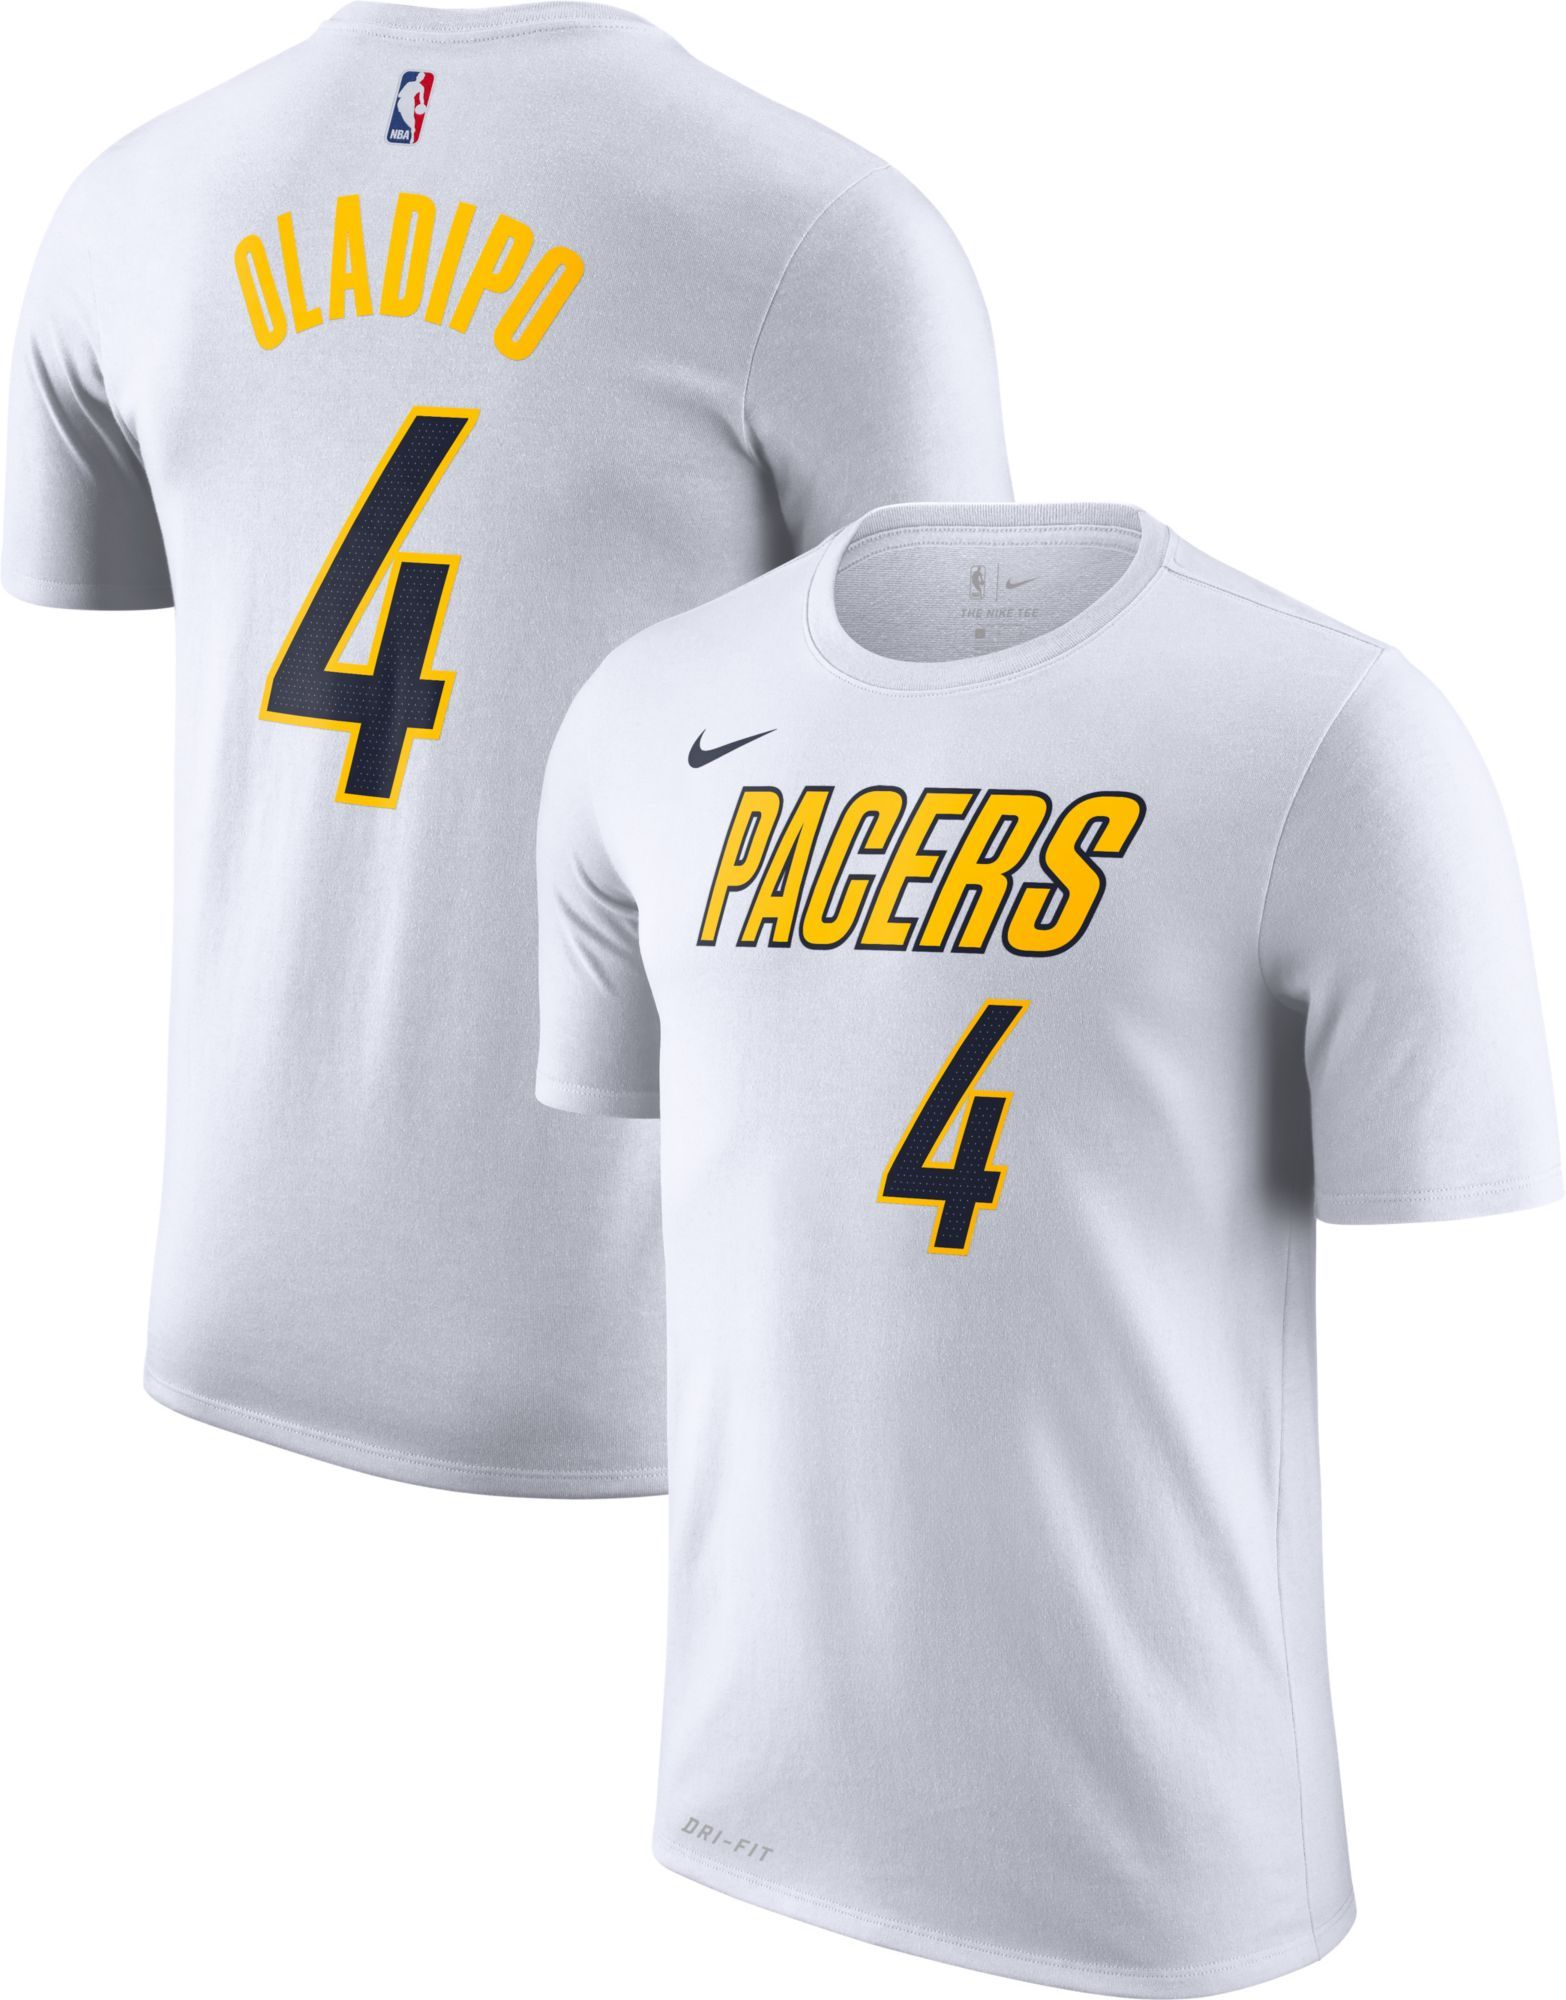 new arrival 6dd76 2ded0 Nike Men's Indiana Pacers Victor Oladipo Dri-FIT Earned ...